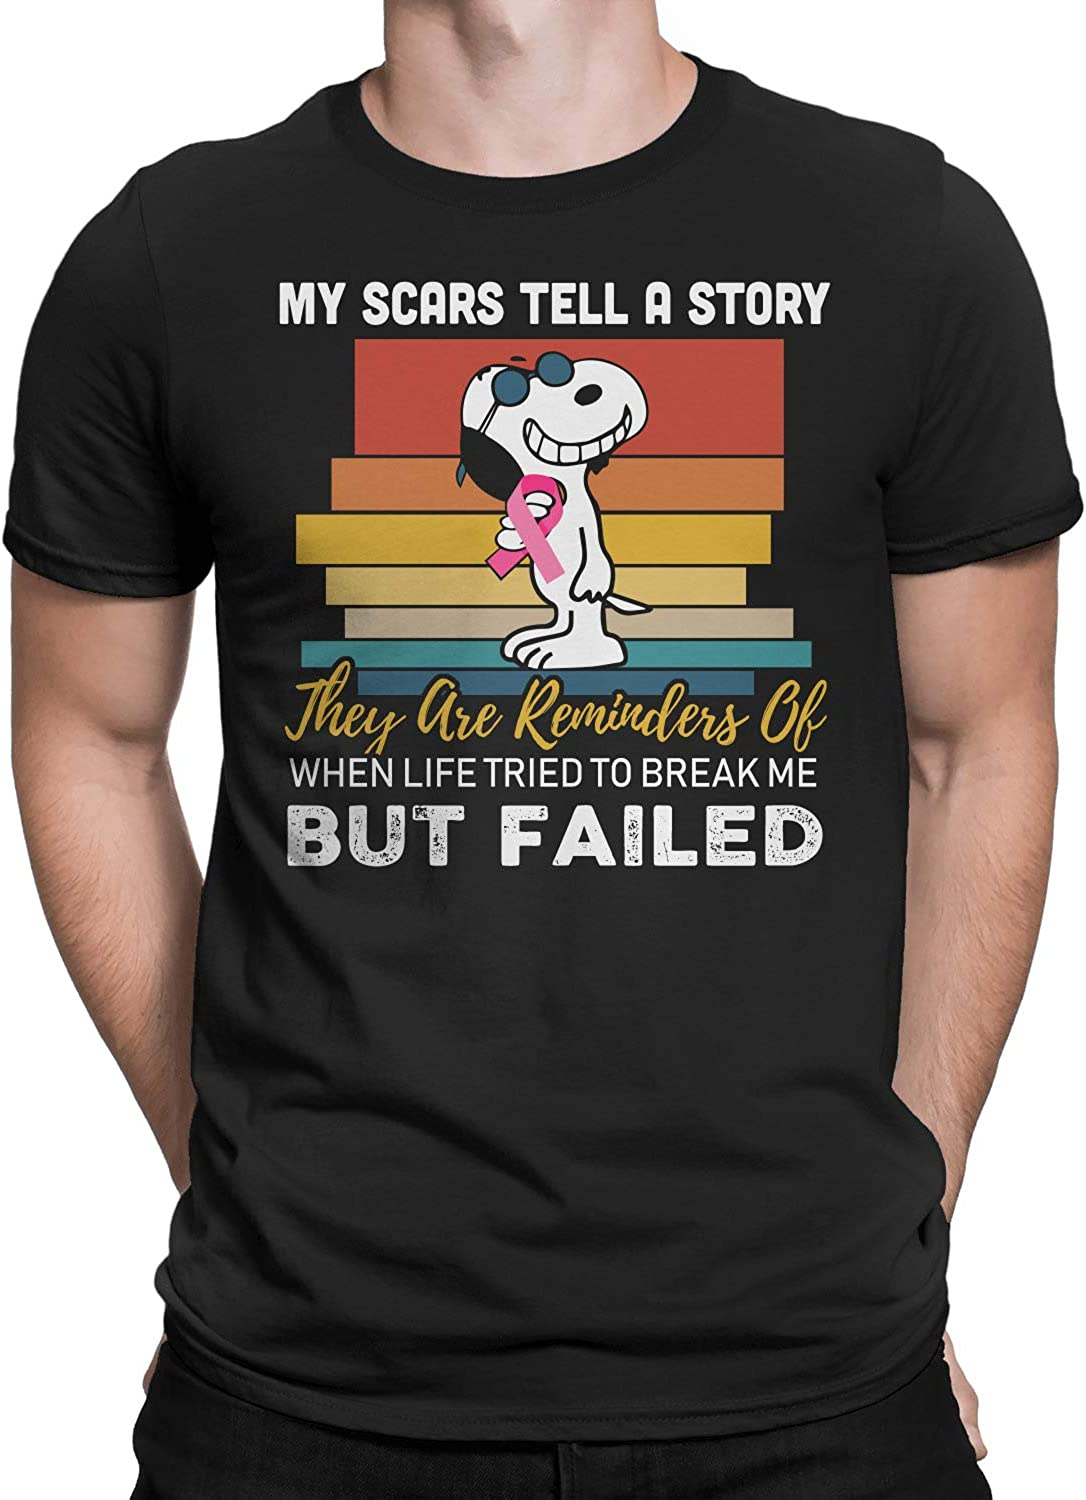 Life Tried to Break Me But Failed T-Shirt